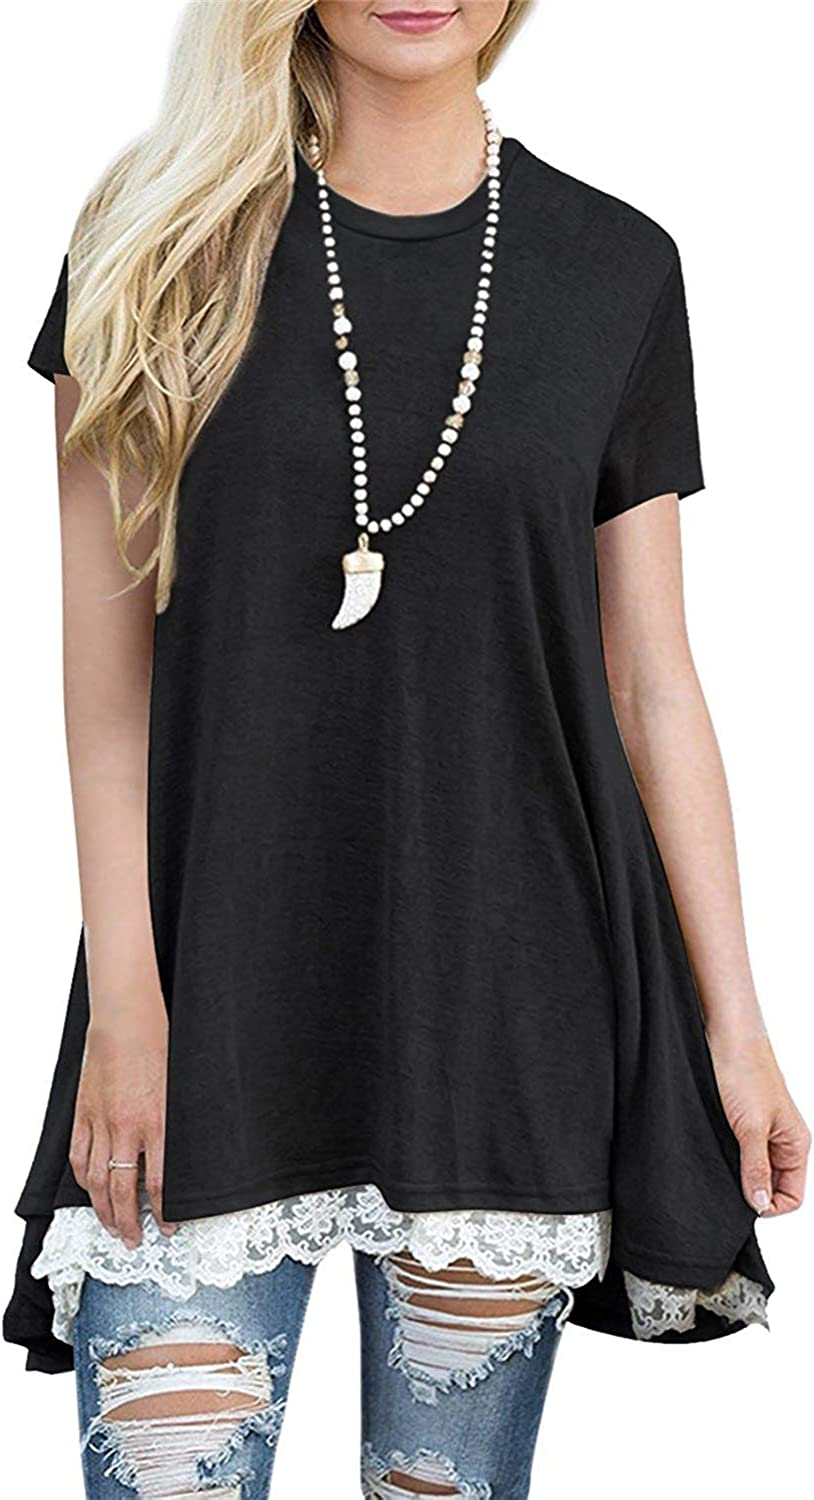 LERUCCI Women's Casual Short Sleeve Round Neck Loose Tunic T Shirt Top Blouse Black XXLarge